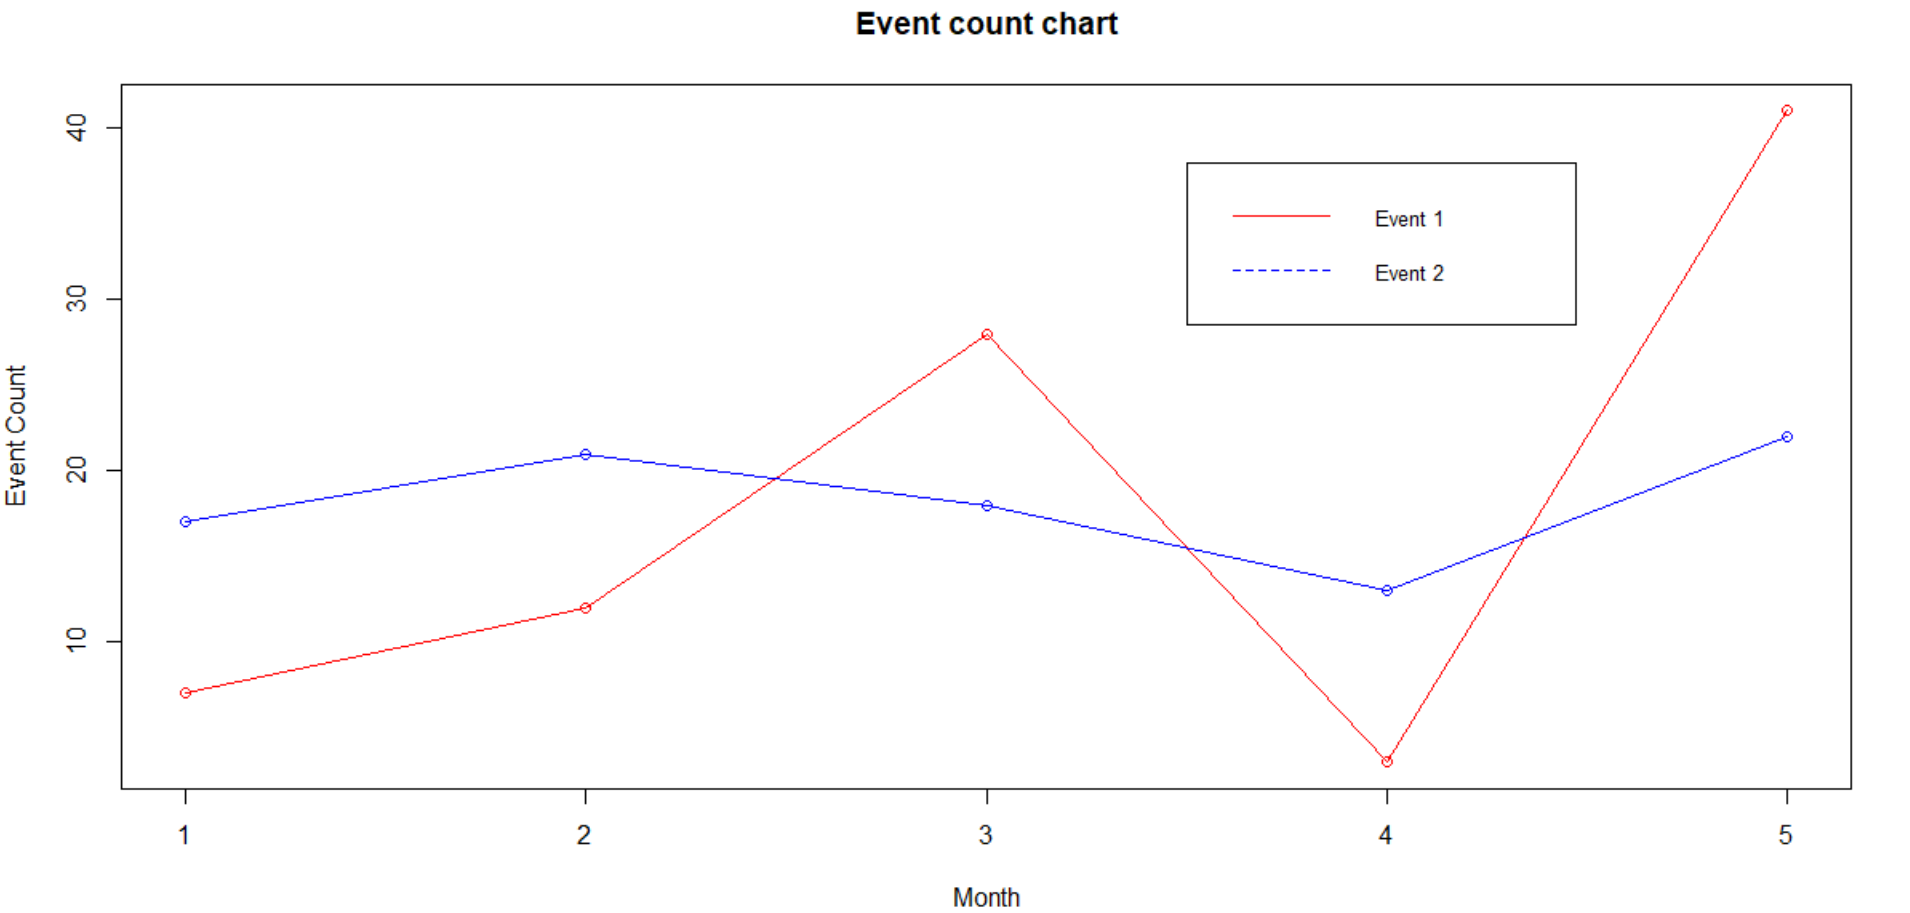 Event count chart